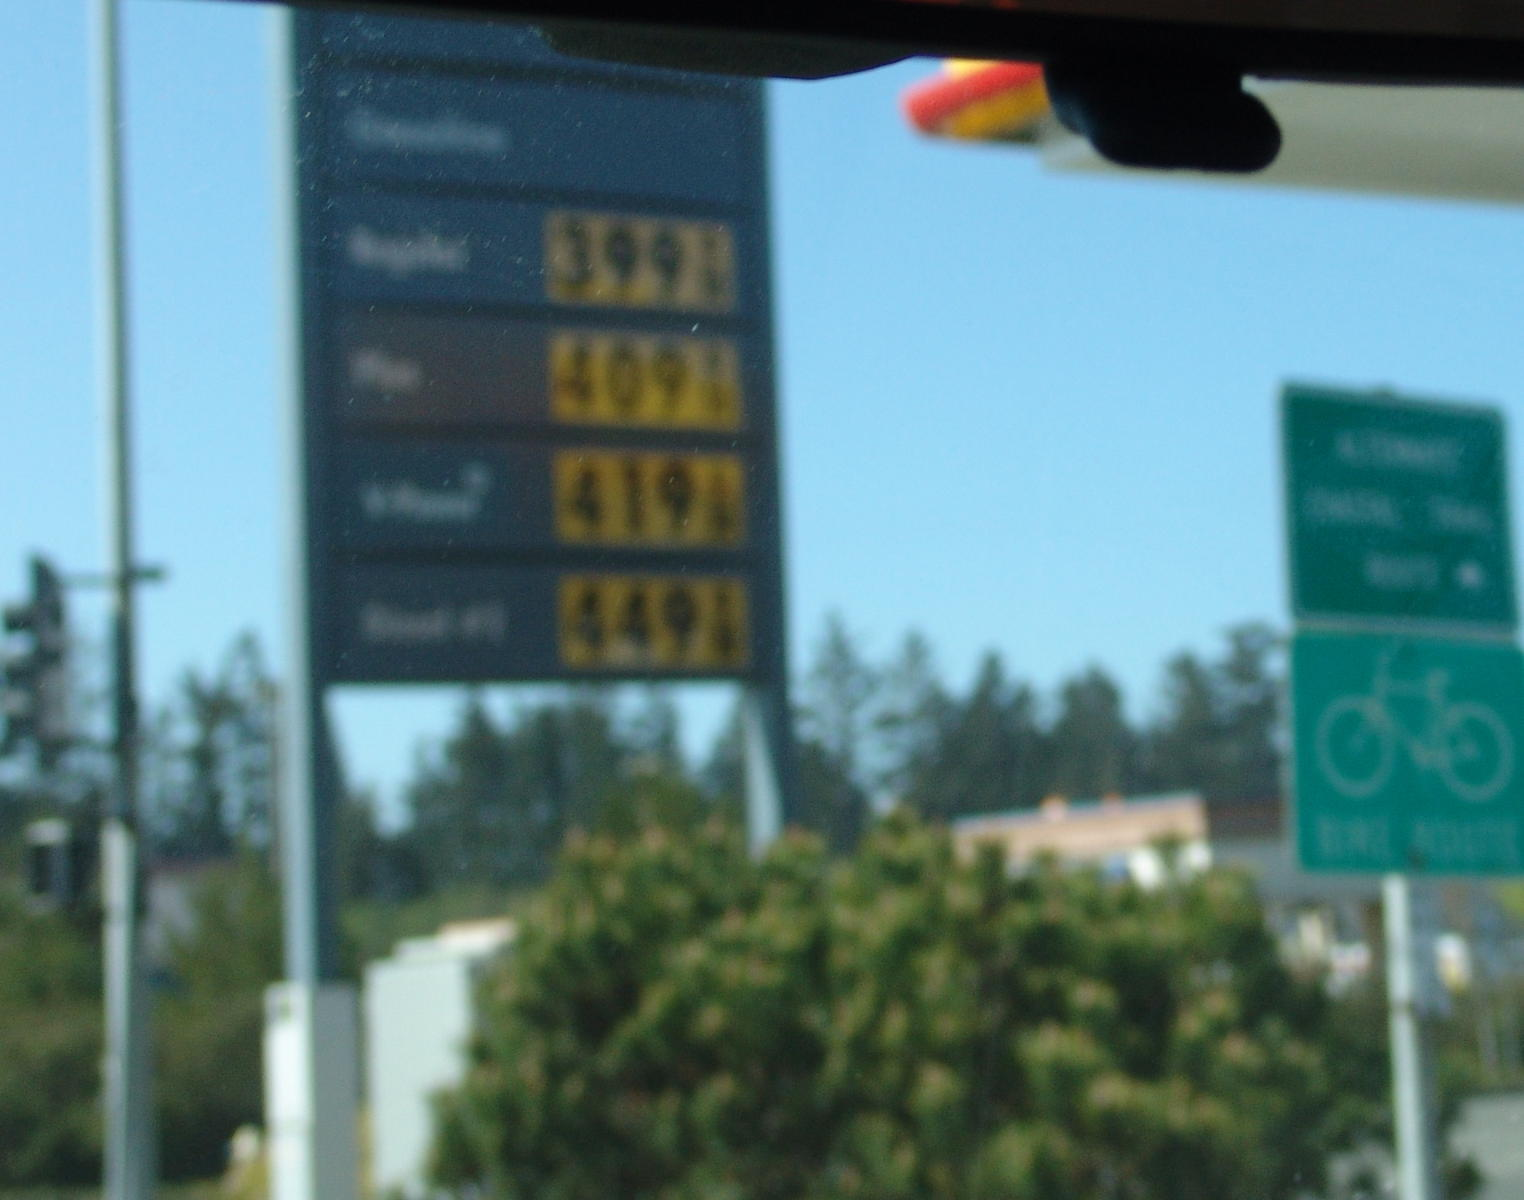 How much is Gas per gallon in California these days? (Orange: for sale